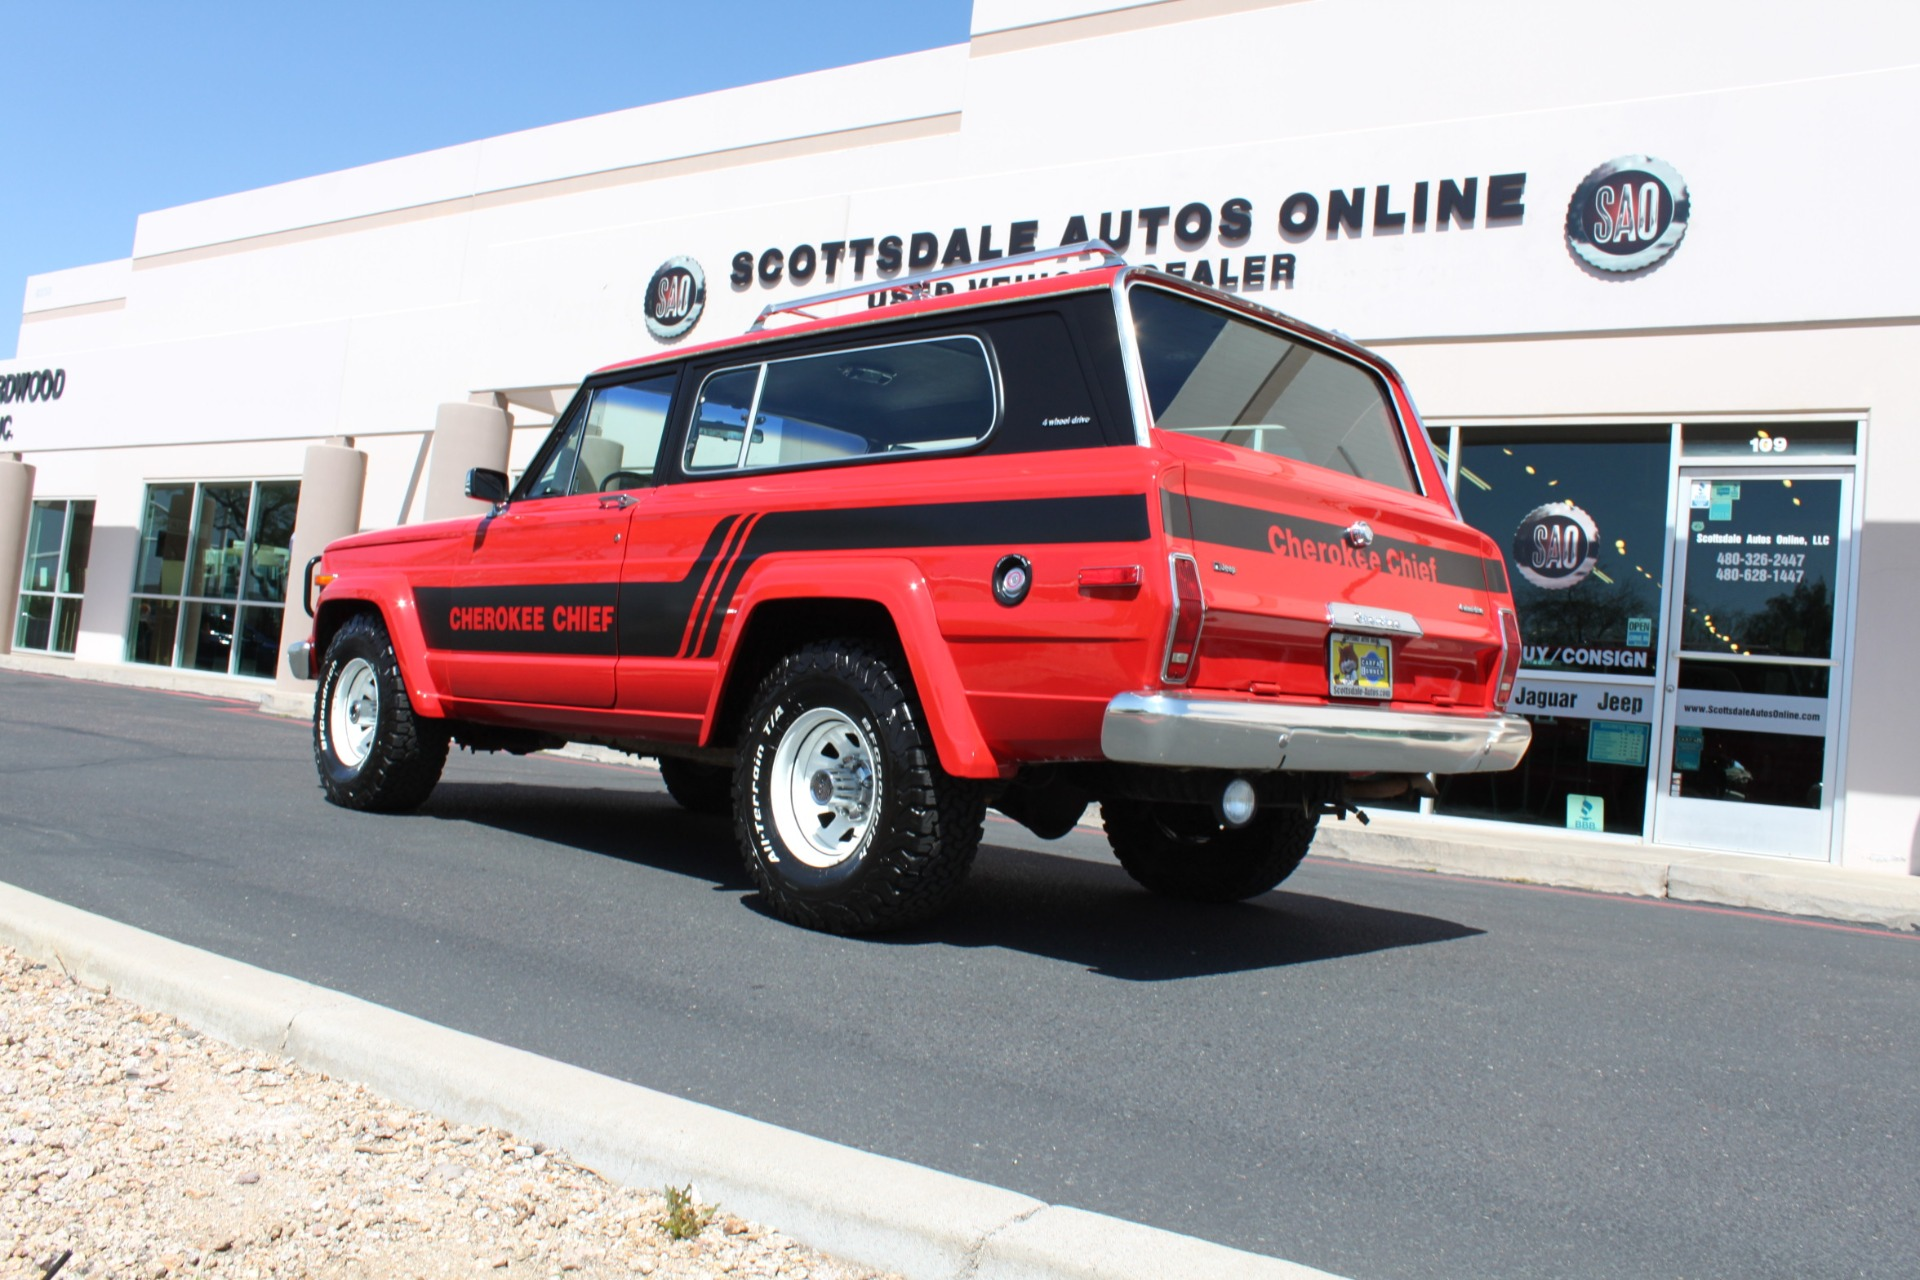 Used-1983-Jeep-Cherokee-4WD-Chief-Fiat